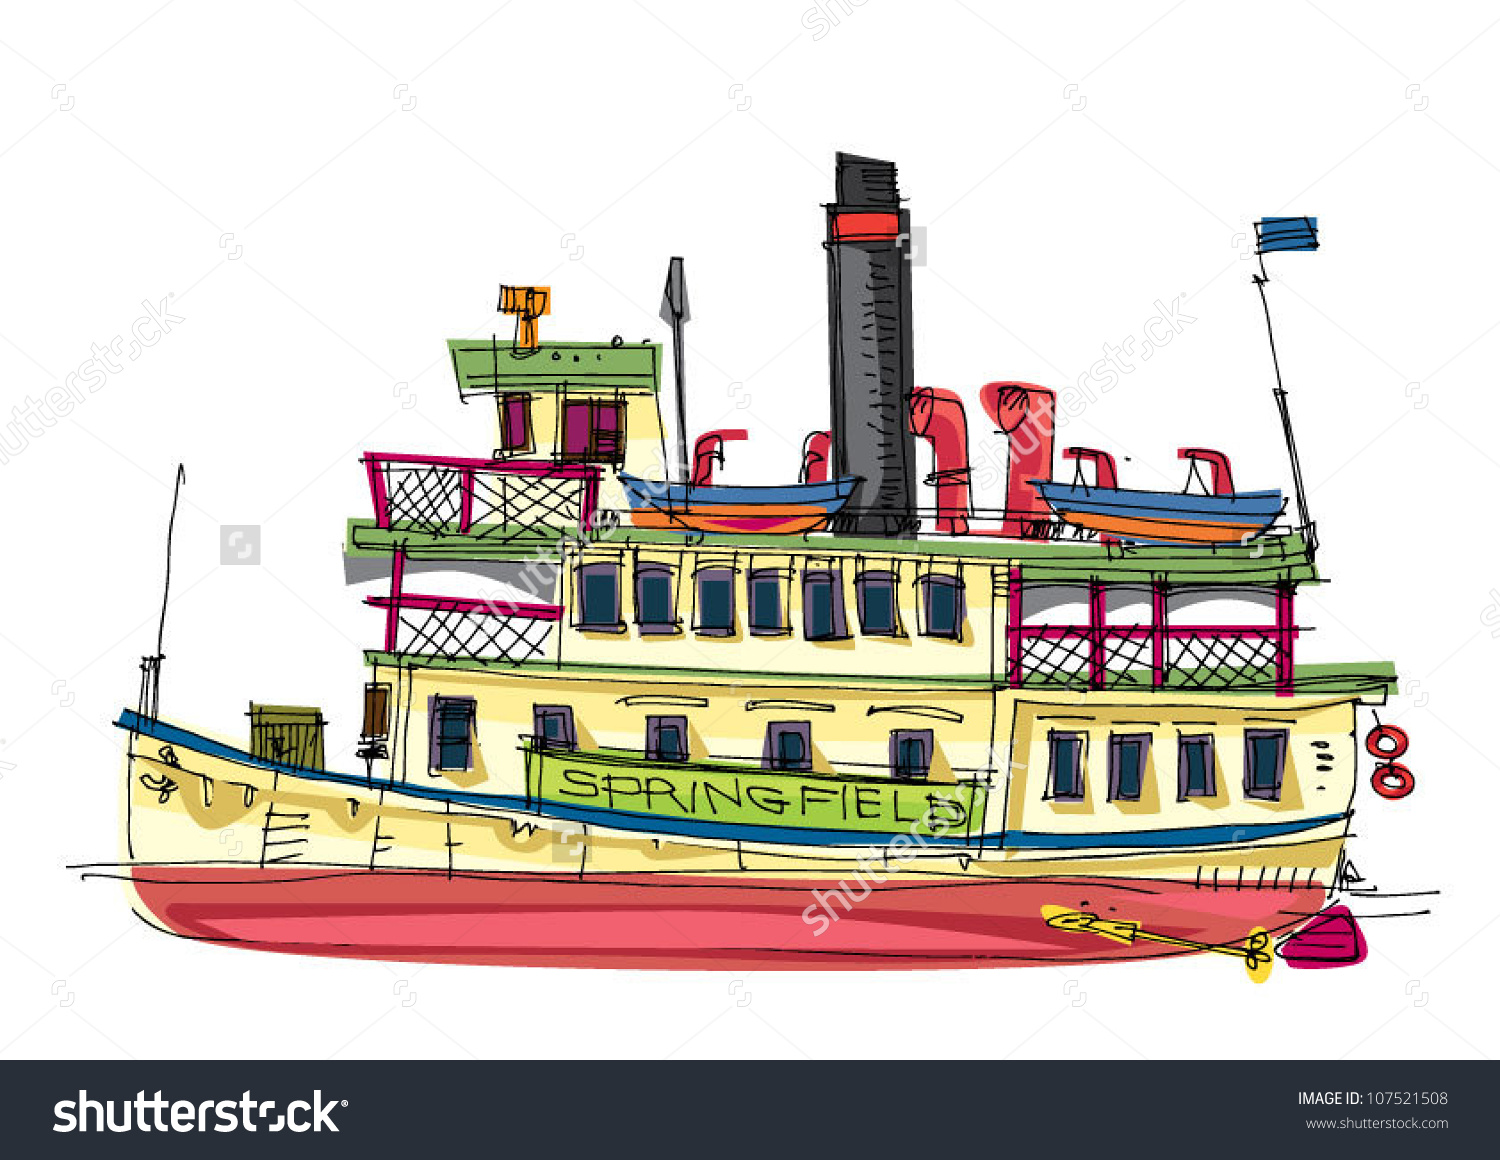 Steamer Cartoon Stock Vector 107521508.